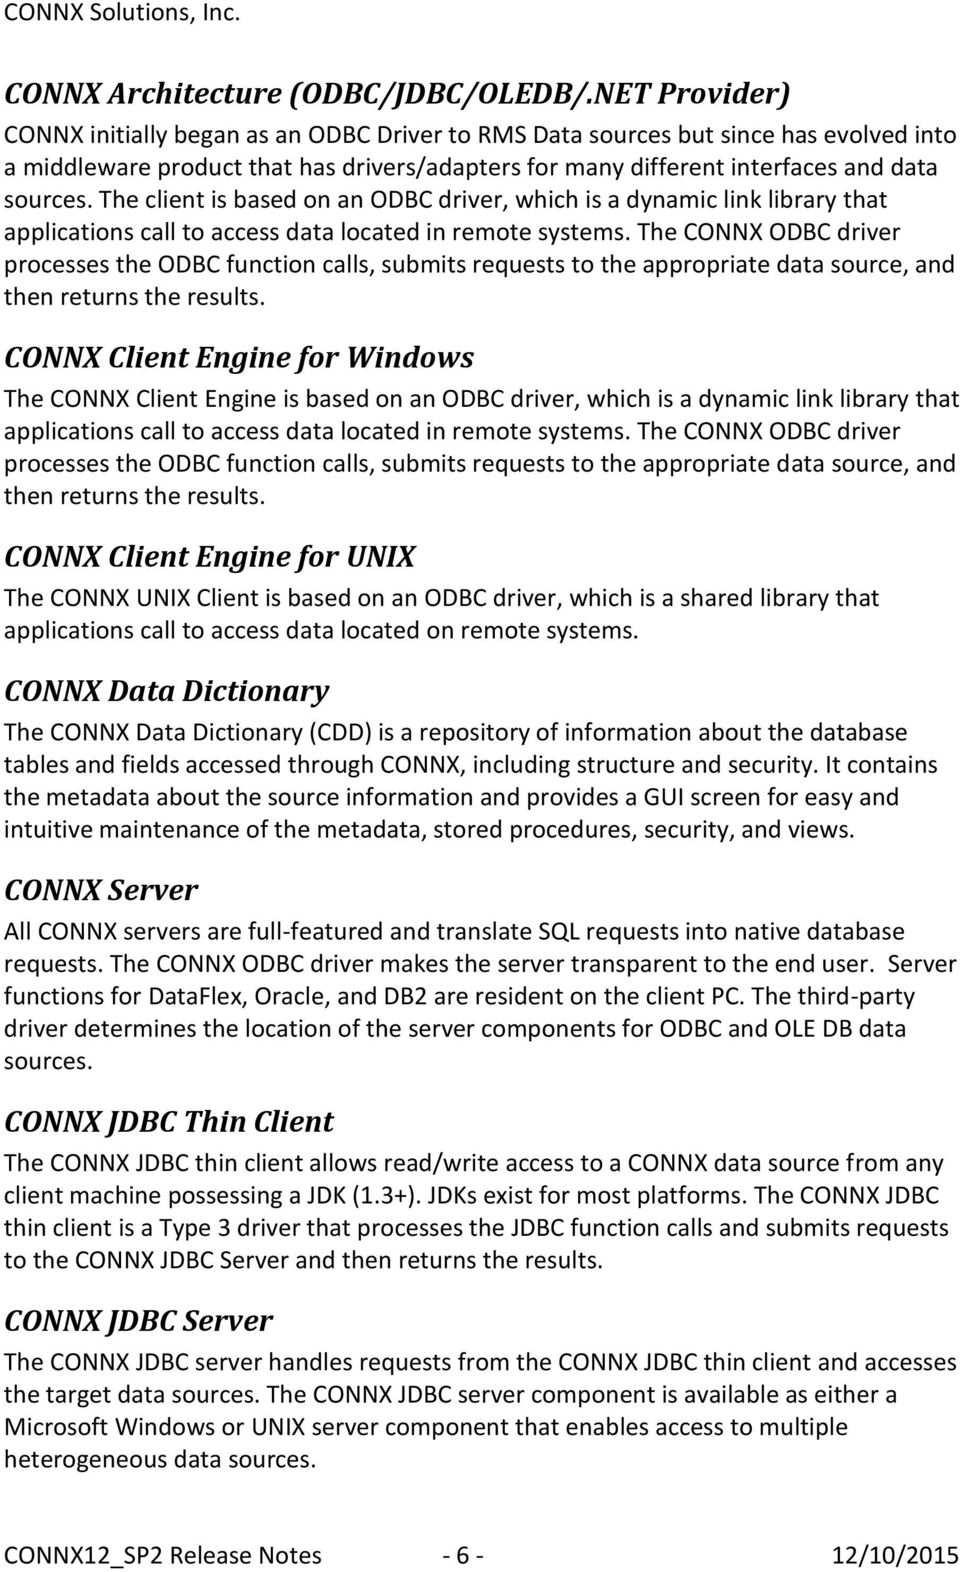 CONNX JDBC DRIVER FOR WINDOWS MAC